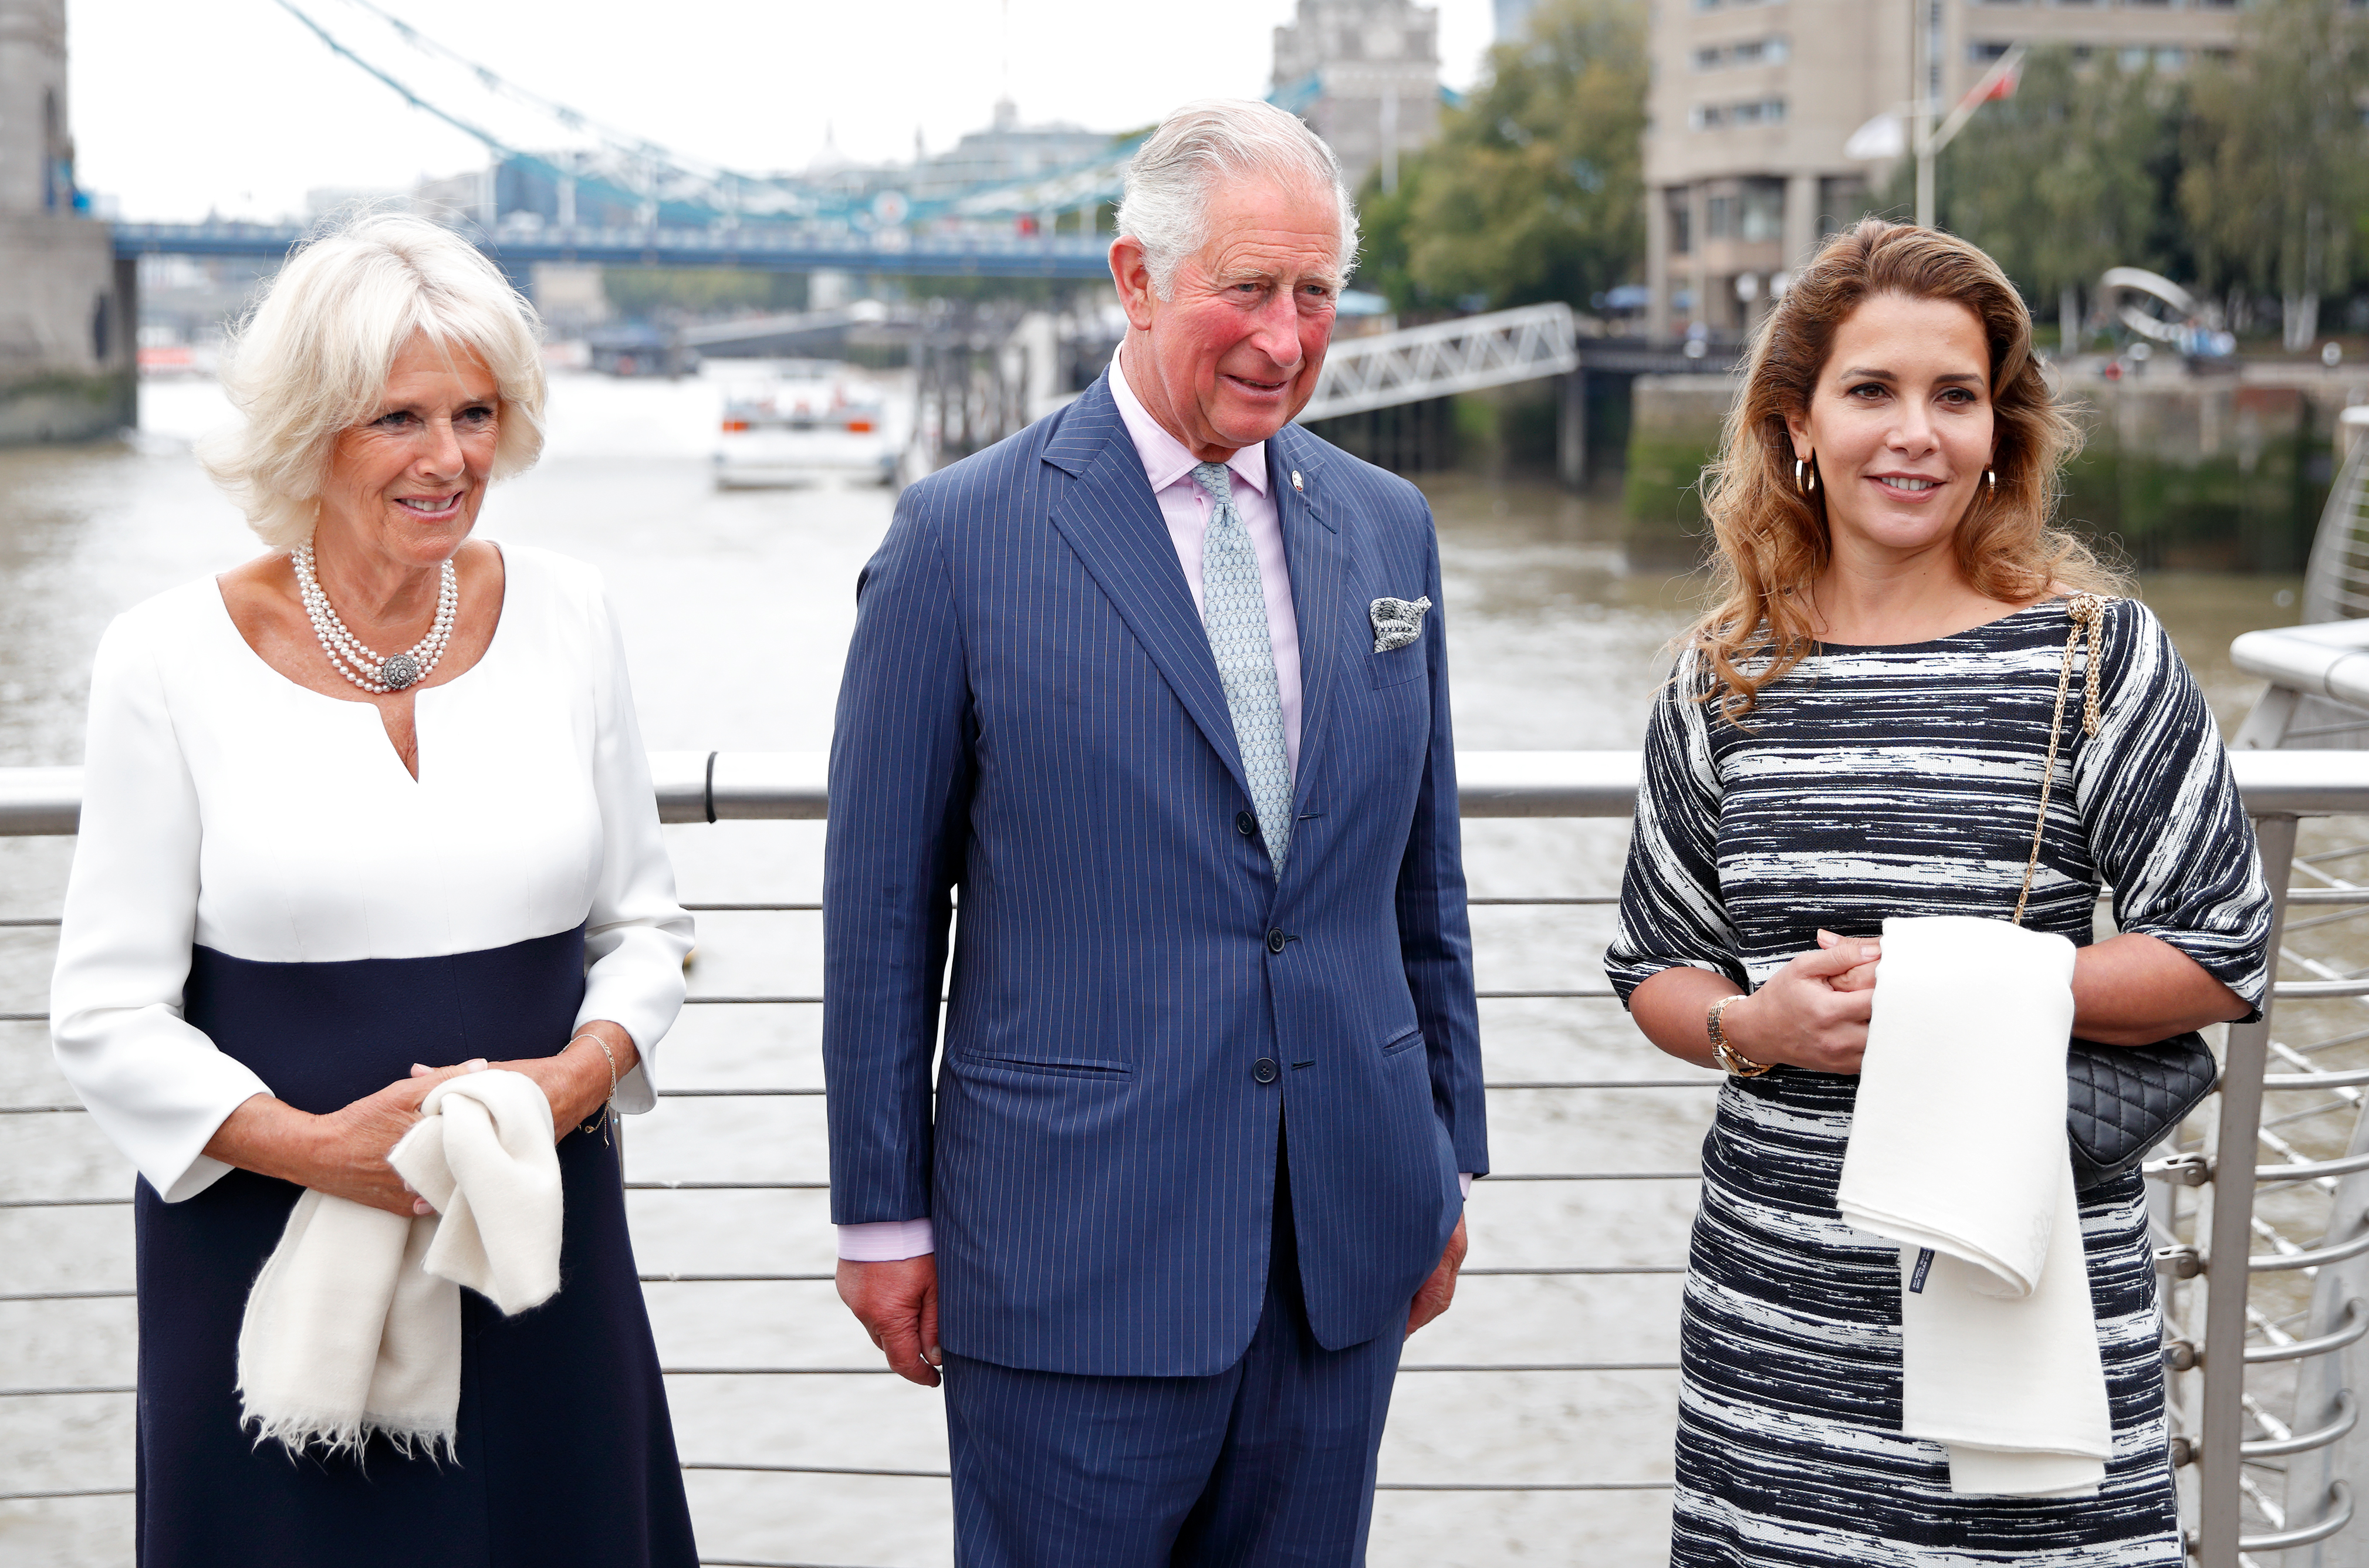 LONDON, UNITED KINGDOM - SEPTEMBER 05: (EMBARGOED FOR PUBLICATION IN UK NEWSPAPERS UNTIL 24 HOURS AFTER CREATE DATE AND TIME) Camilla, Duchess of Cornwall, Prince Charles, Prince of Wales and Princess Haya Bint Al Hussein visit the newly refurbished 'Maiden' Yacht at HMS President on September 5, 2018 in London, England. The 'Maiden' Yacht was used by the first all-female crew to sail in the 1990 Whitbread Round the World Race in which they finished second. (Photo by Max Mumby/Indigo/Getty Images)